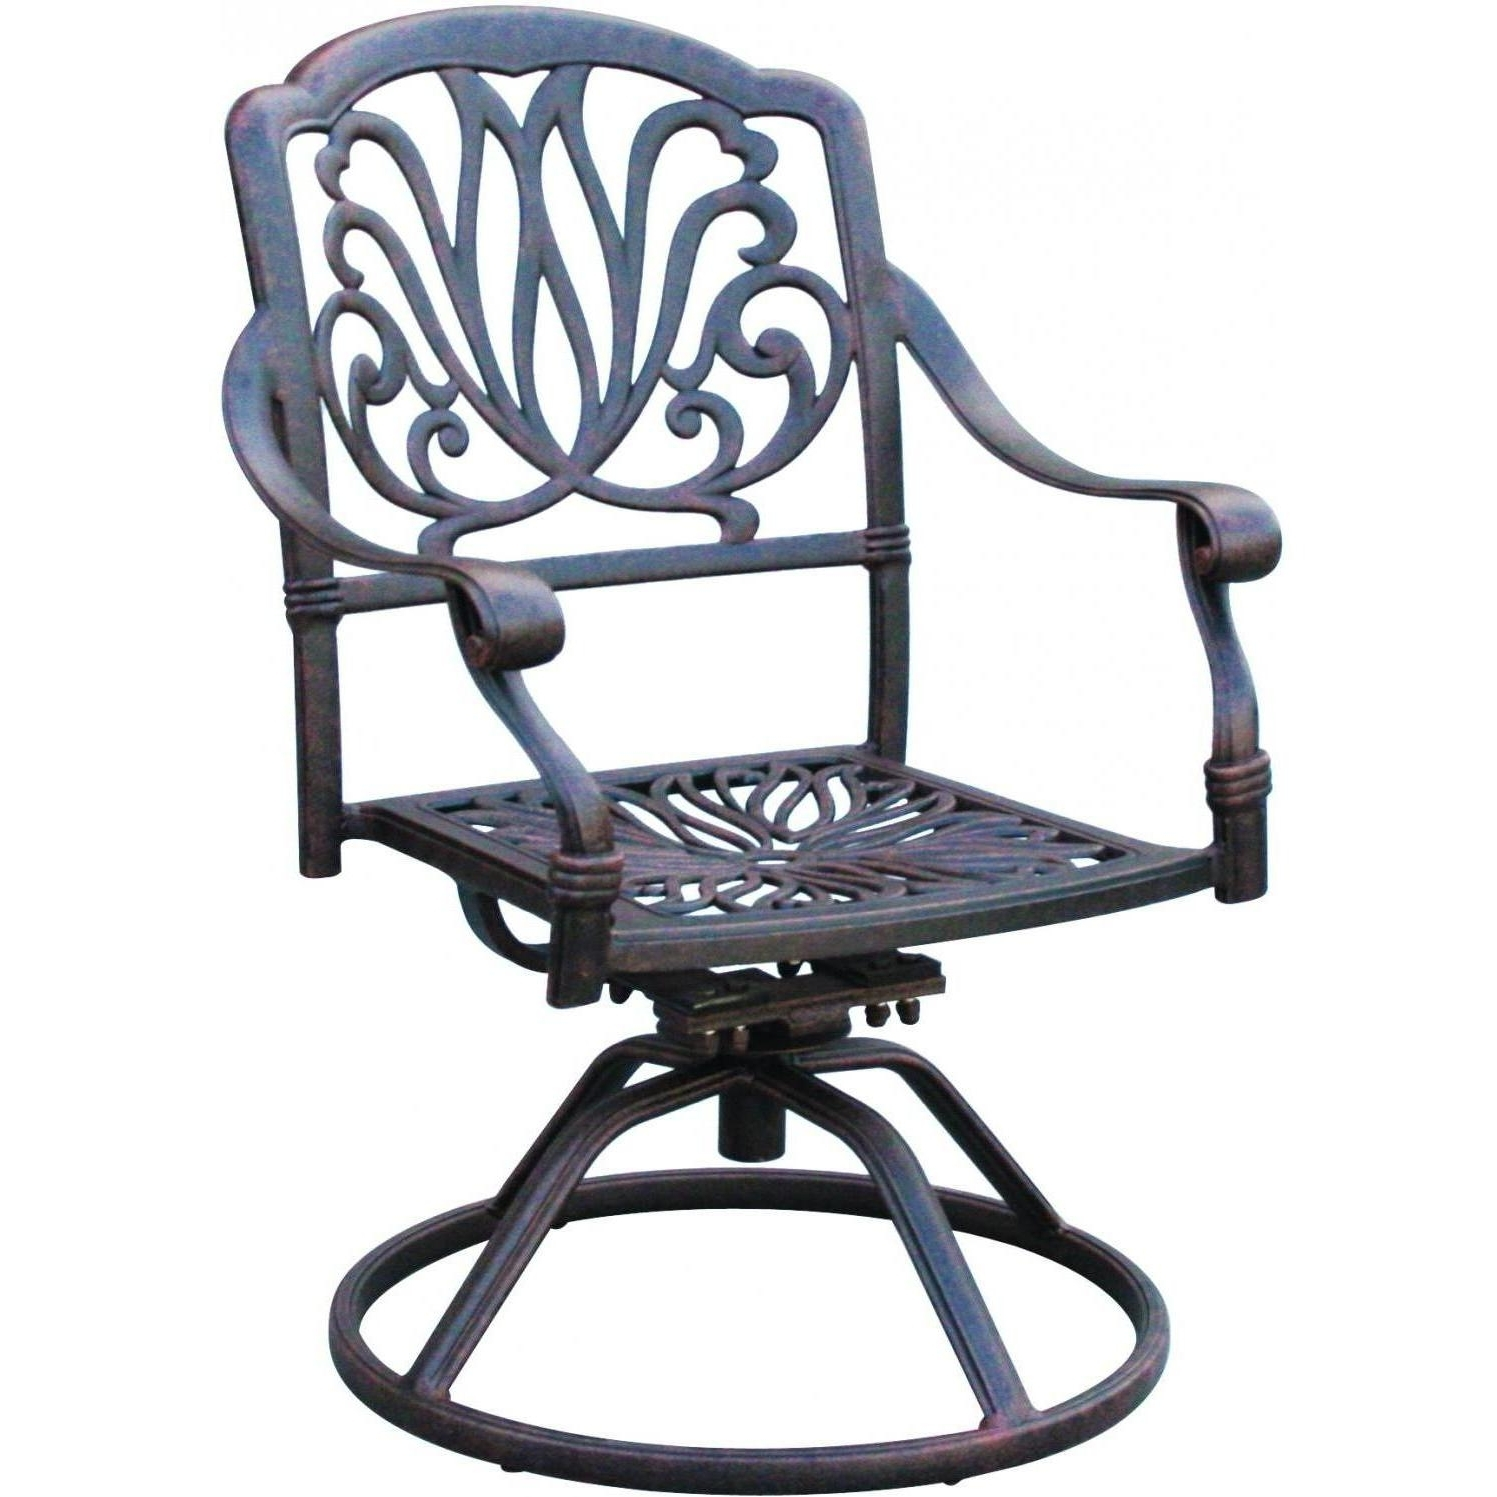 Most Recently Released Iron Rocking Patio Chairs Inside Darlee Elisabeth Cast Aluminum Patio Swivel Rocker Dining Chair (View 9 of 15)